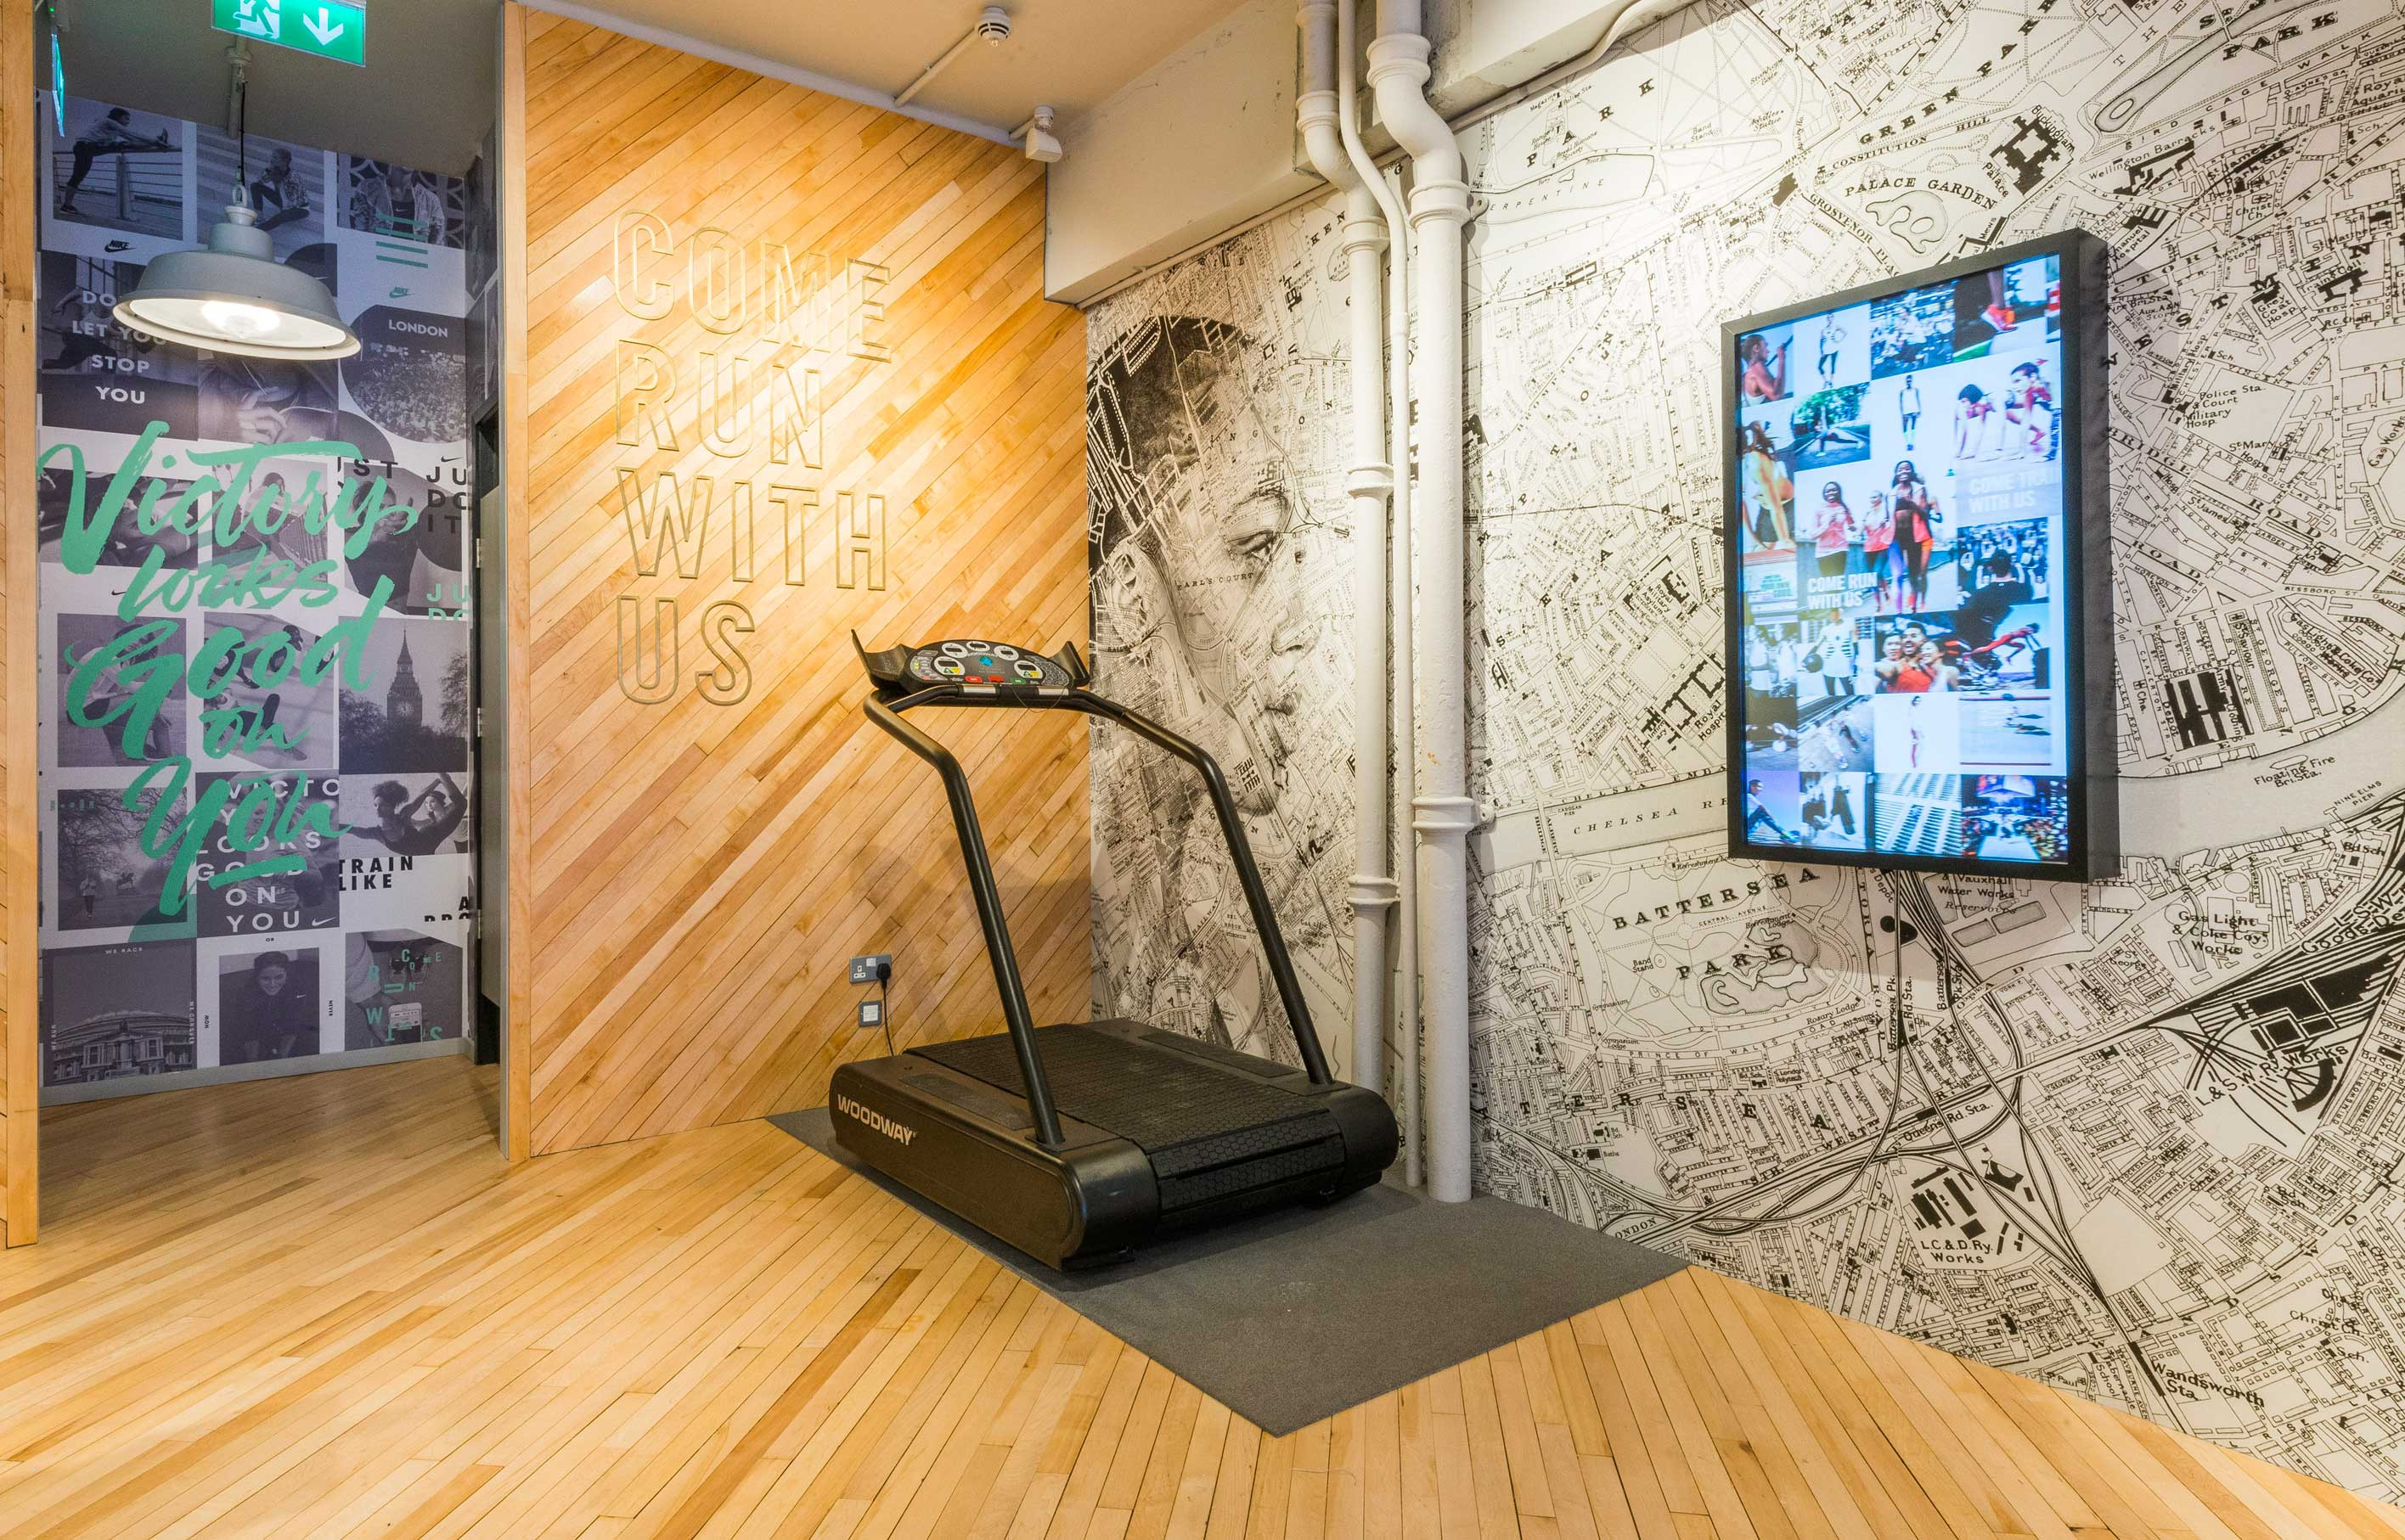 Aldworth James & Bond | Nike Women Store, London - map graphics and signage